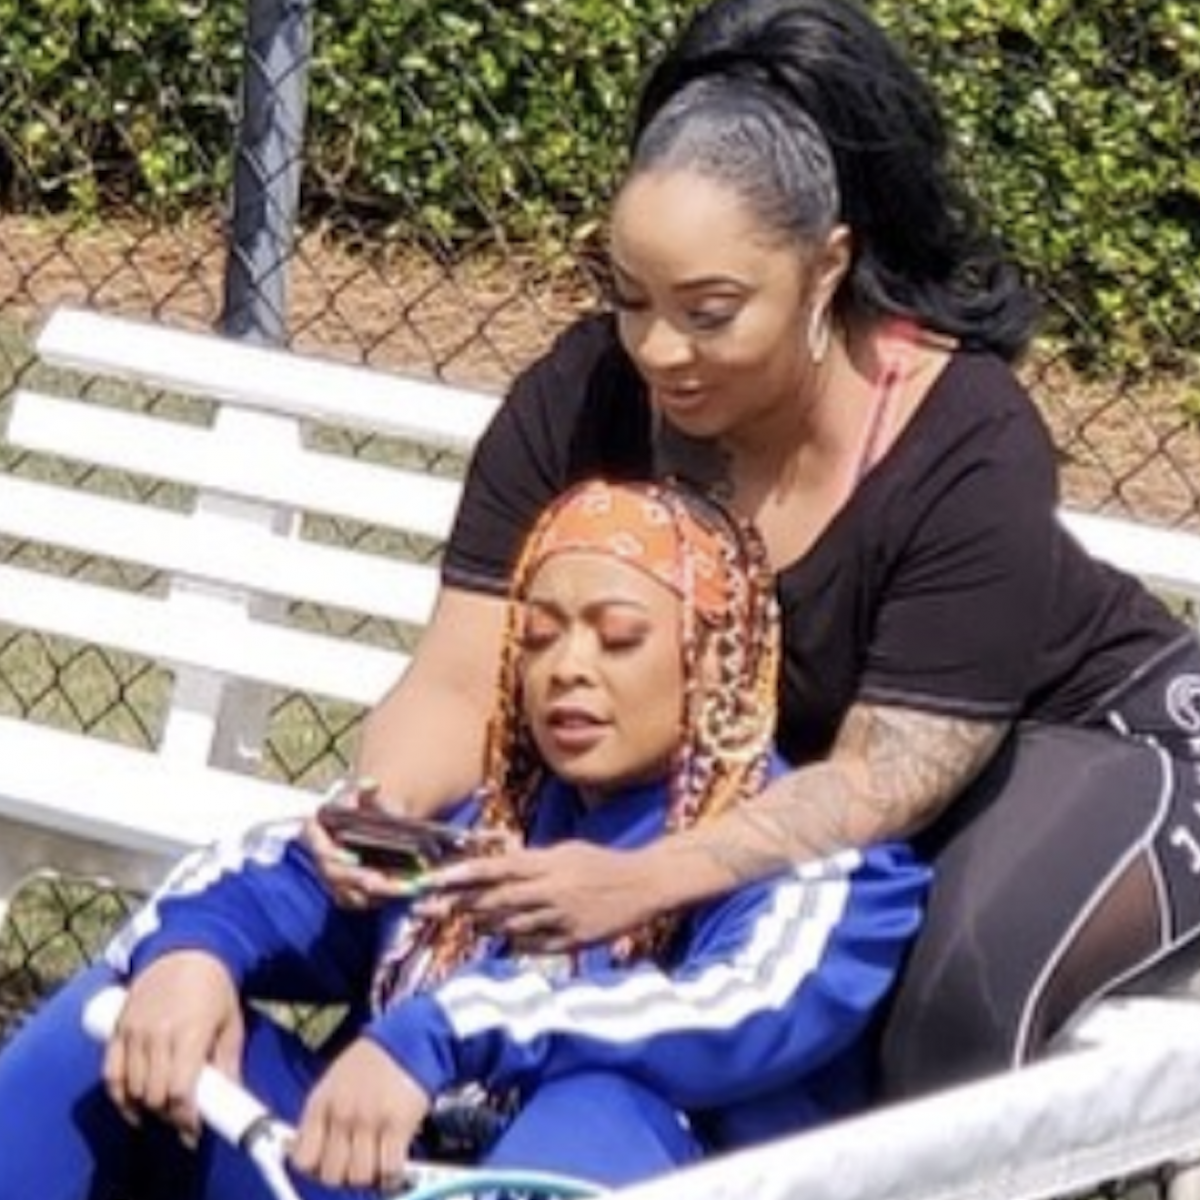 Da Brat Reveals Why She Waited 20 Years To Come Out: 'I Did It On My Own Terms'